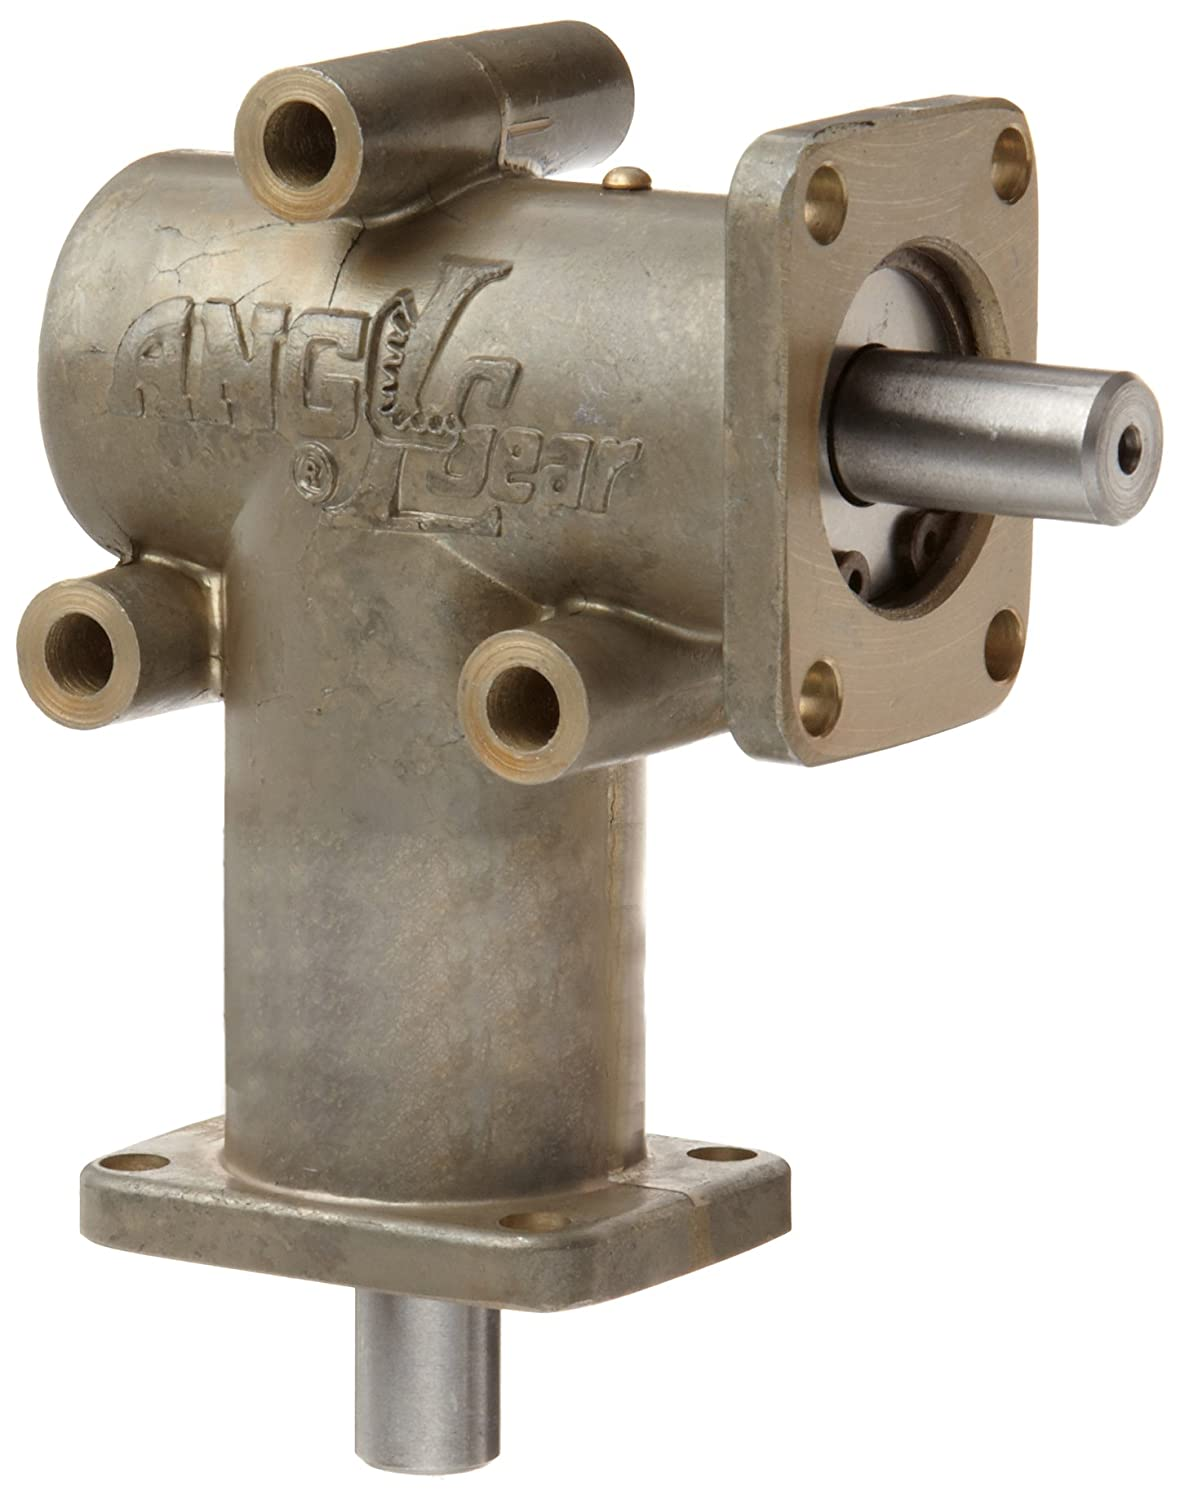 Image of Andantex R3000 Anglgear Right Angle Bevel Gear Drive, Universal Mounting, Single Output Shaft, 2 Flanges, Inch, 3/8' Shaft Diameter, 1:1 Ratio.34 Hp at 1750rpm Worm Gears